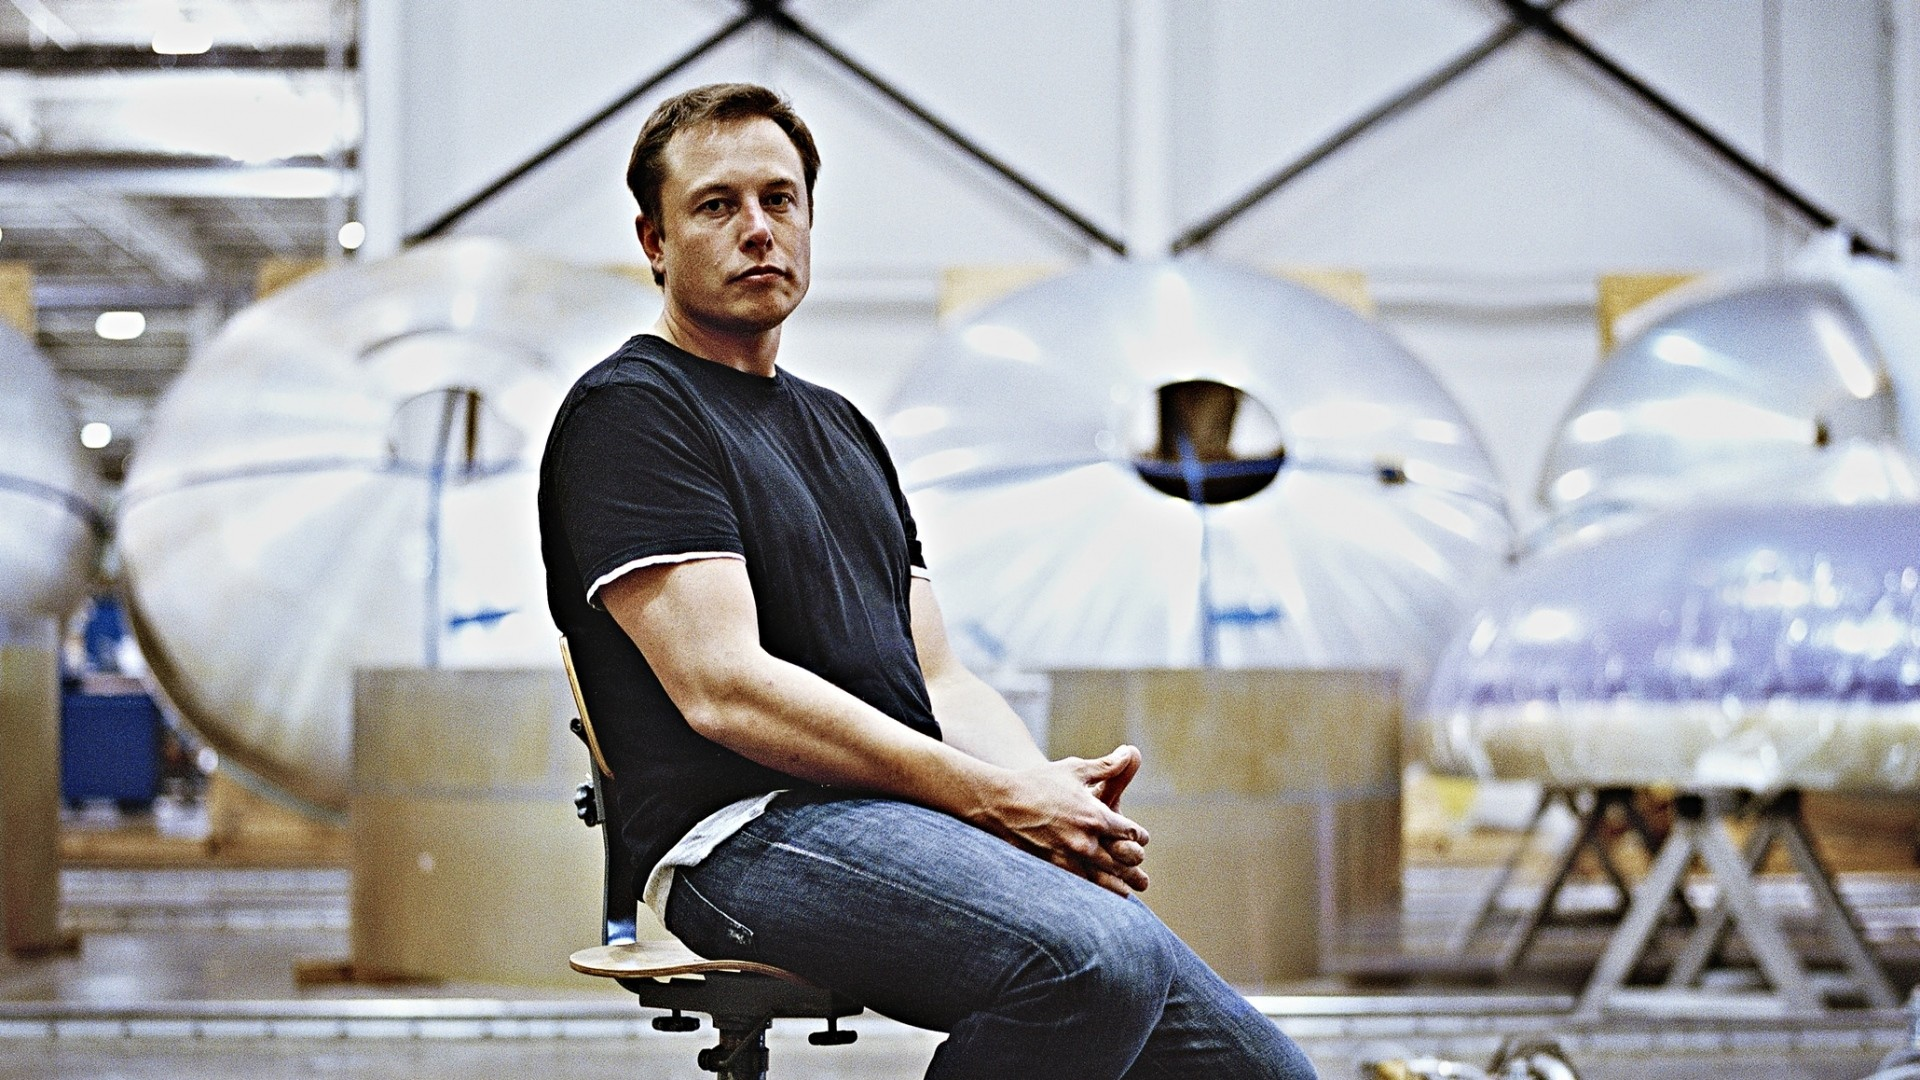 Elon Musk Wallpapers 86 images 1920x1080